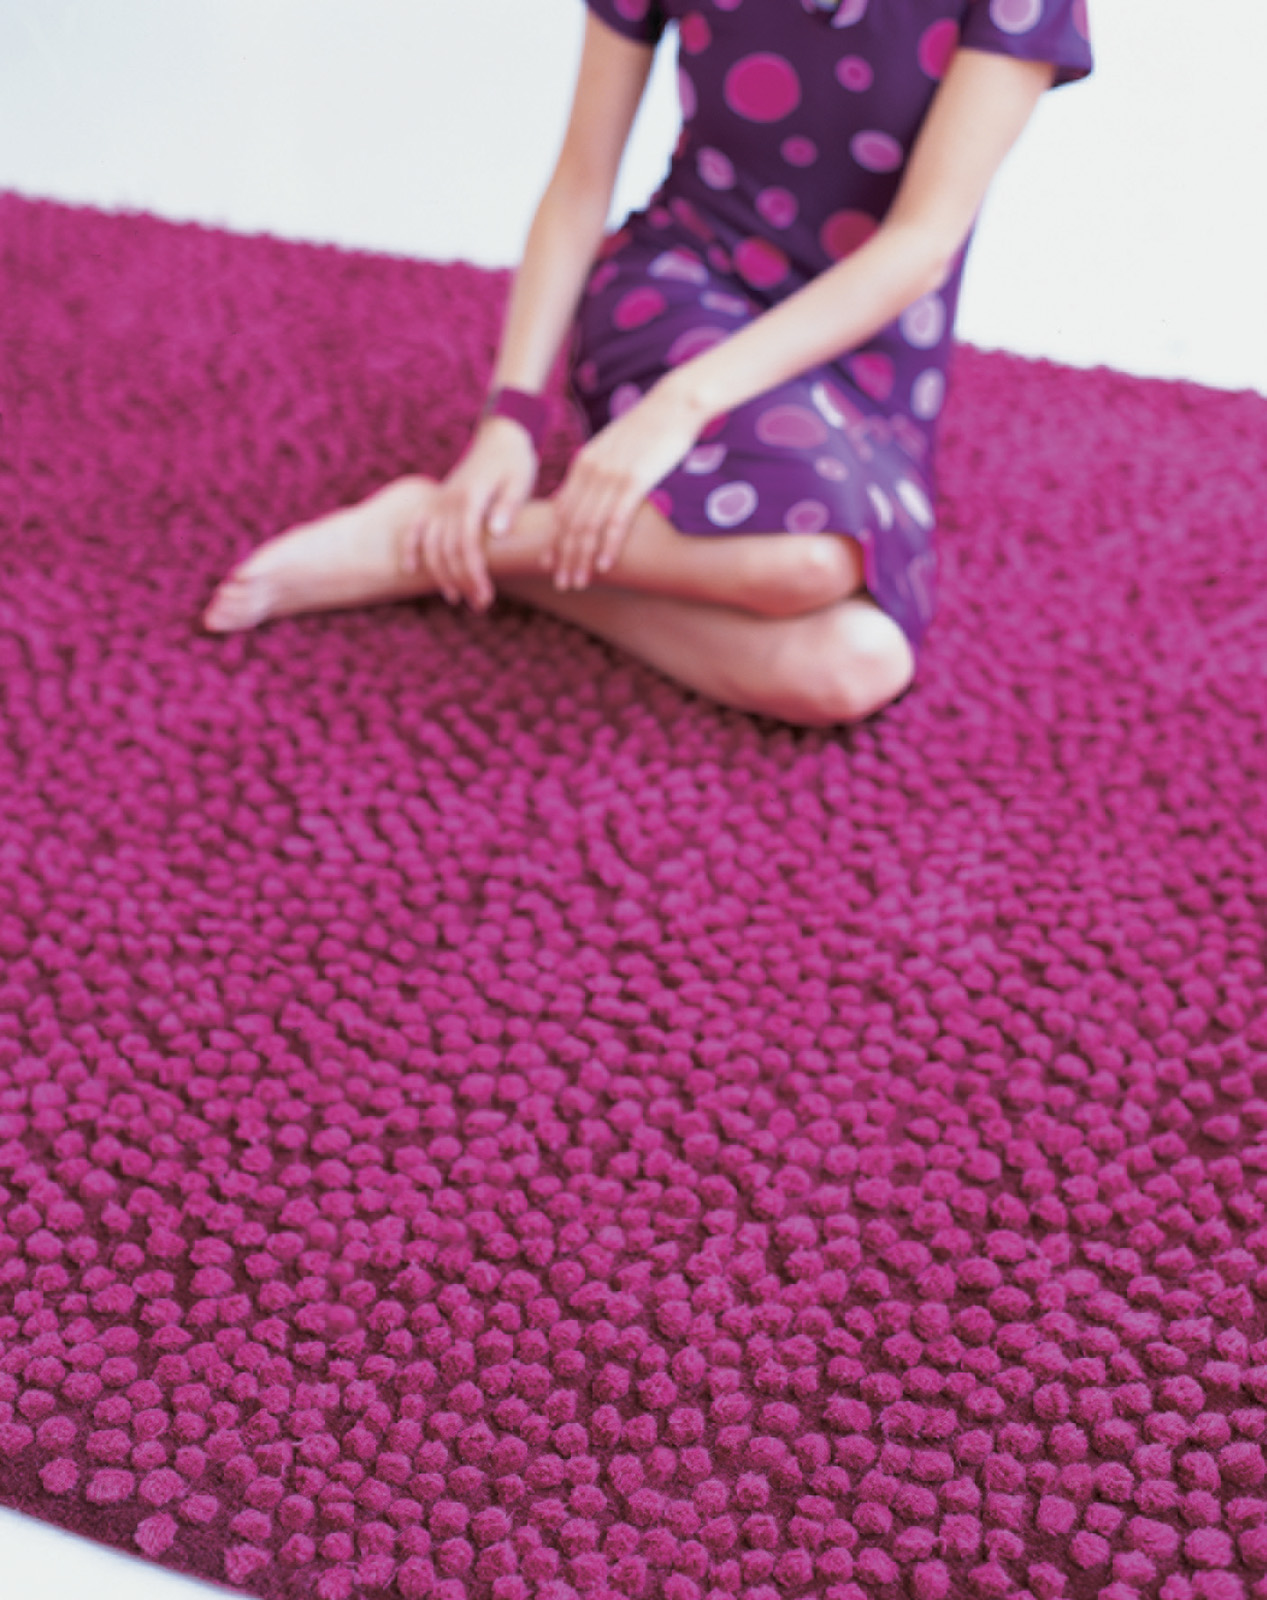 Topissimo rug by Nani Marquina